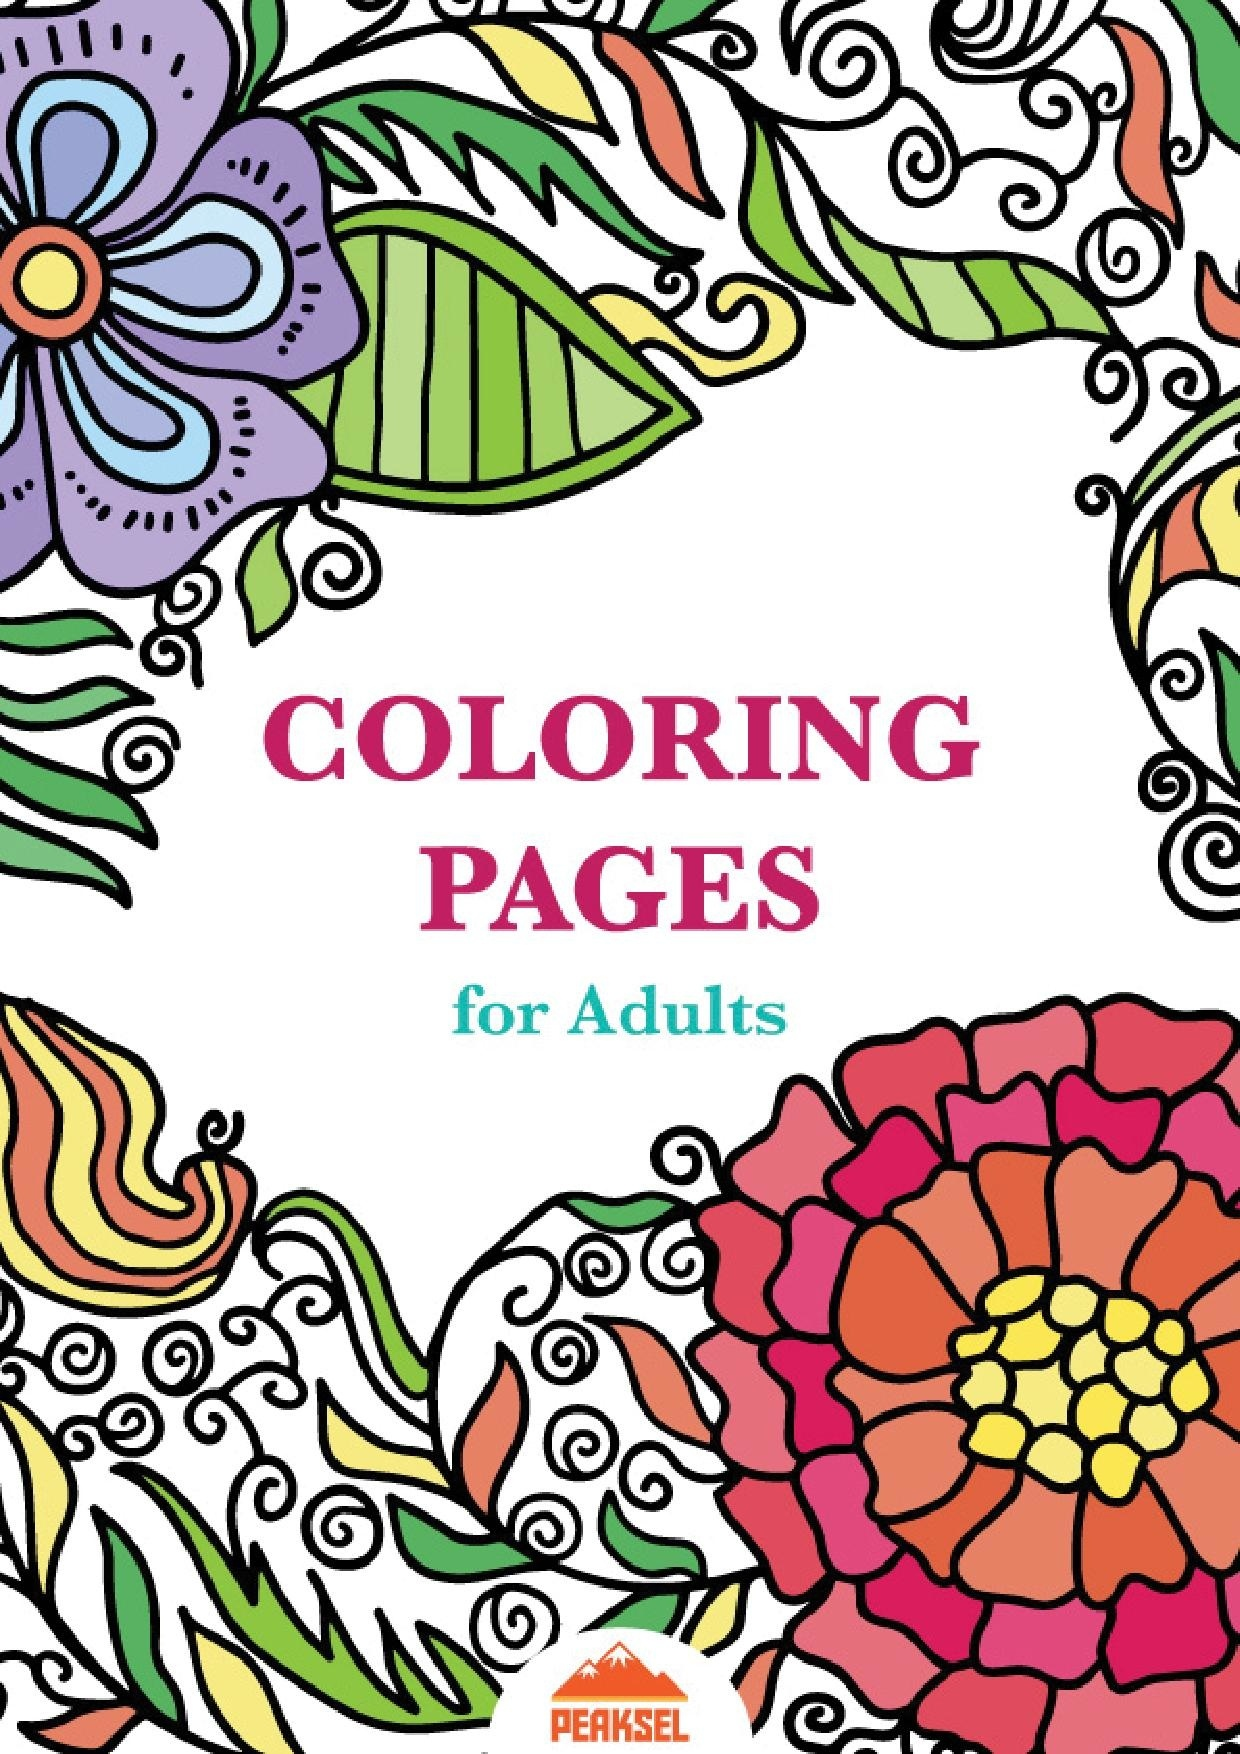 File:printable Coloring Pages For Adults - Free Adult Coloring Book - Free Printable Coloring Books Pdf